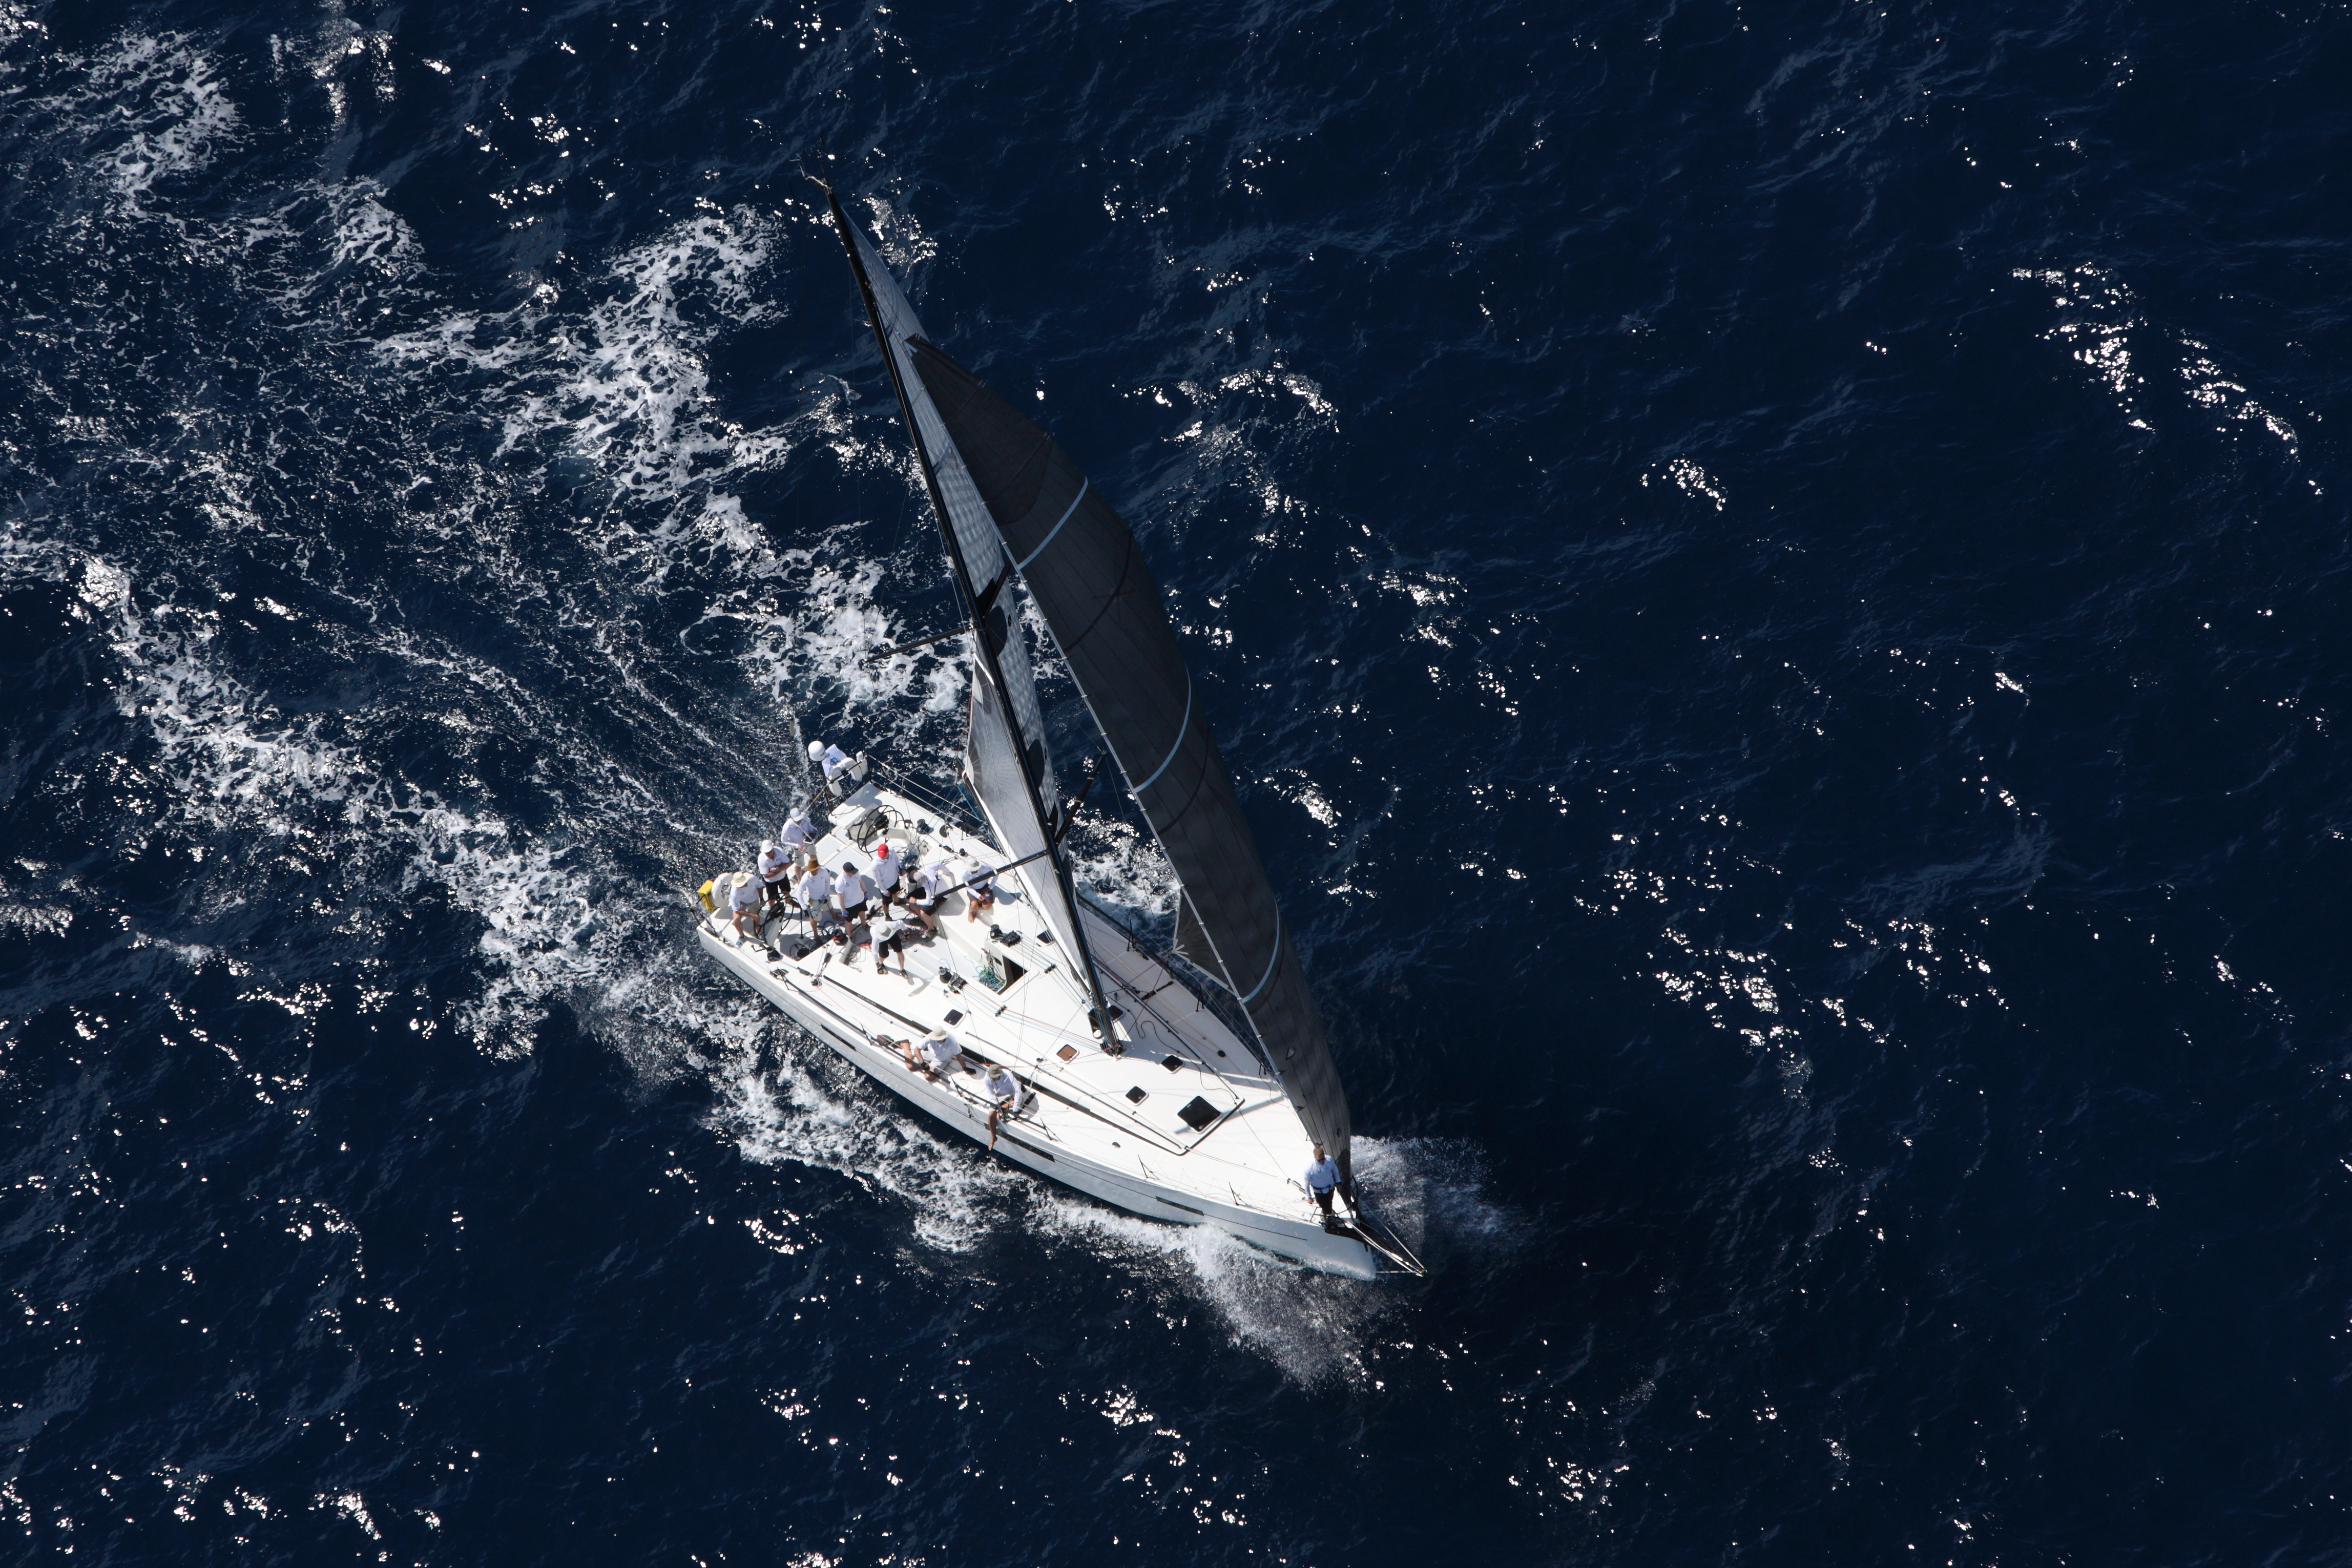 Picture of Pata Negra Lombard 46 racing yacht in the atlantic crossing transatlantic rorc race